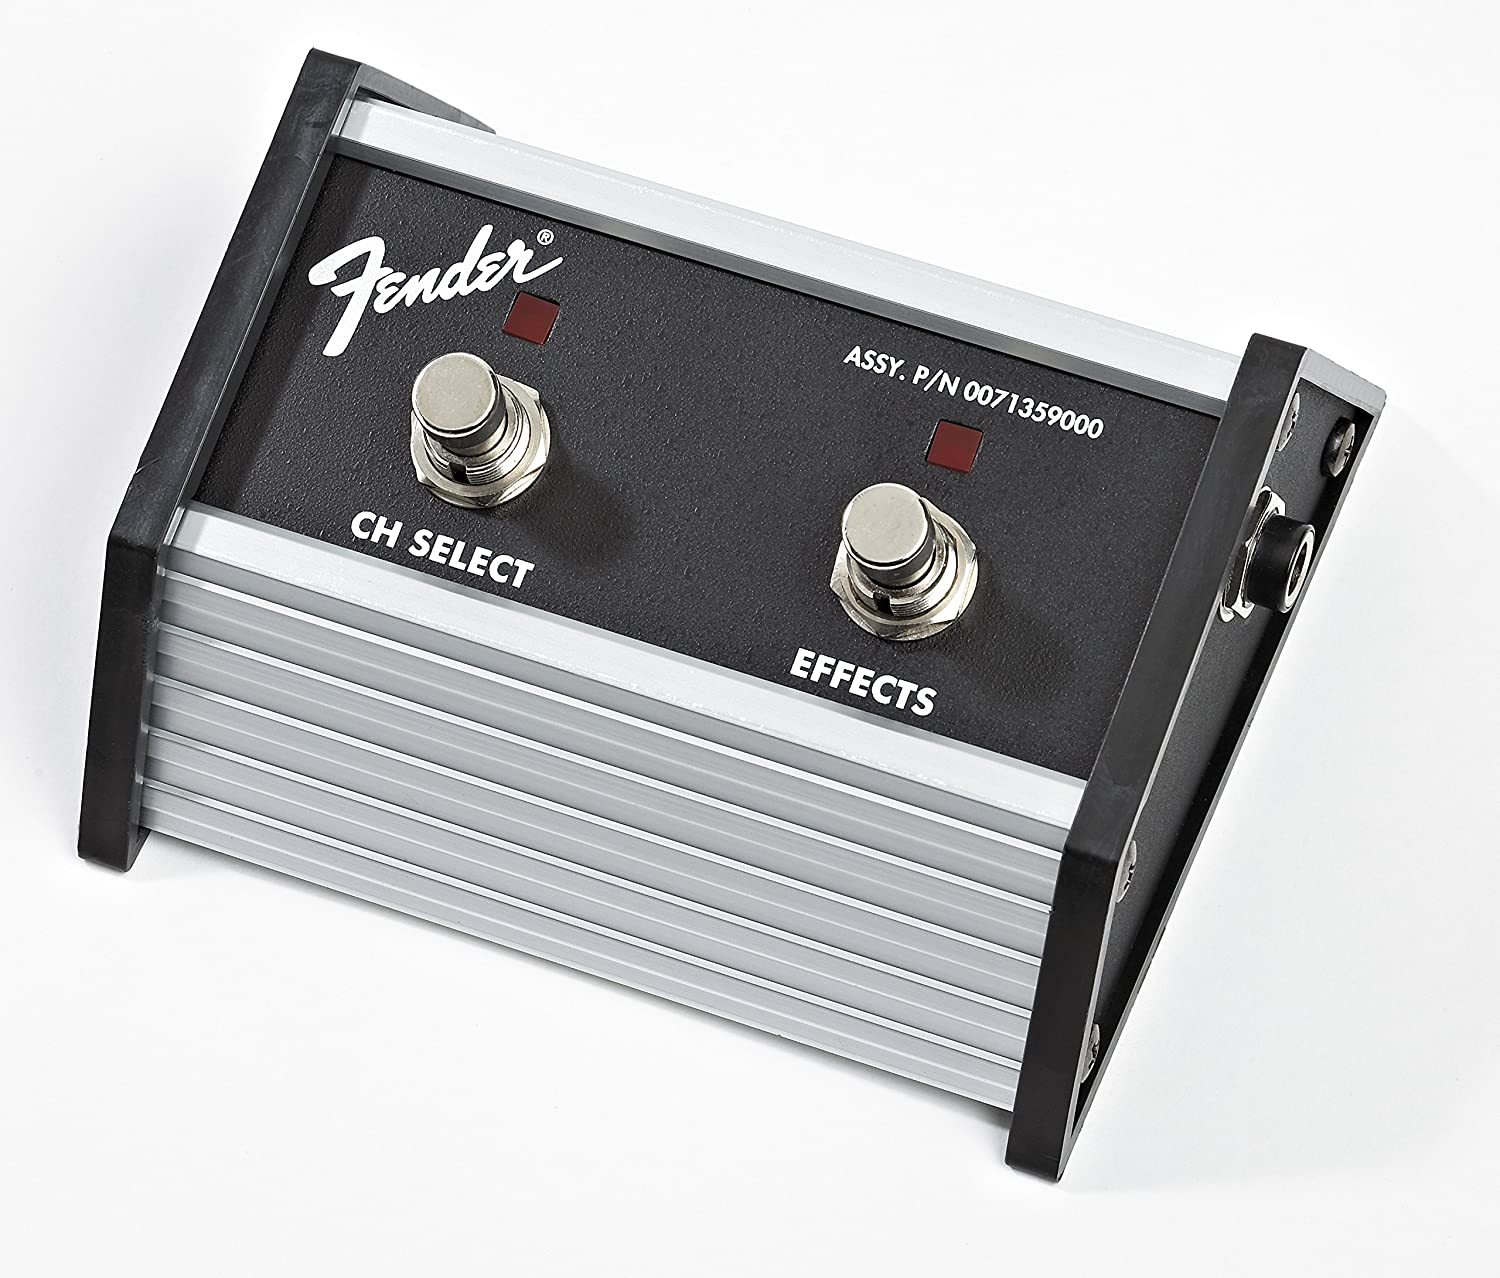 Fender 007-1359-000 Footswitch ECONOMY - 2-button, FM65DSP/Super Champ XD 0071359000